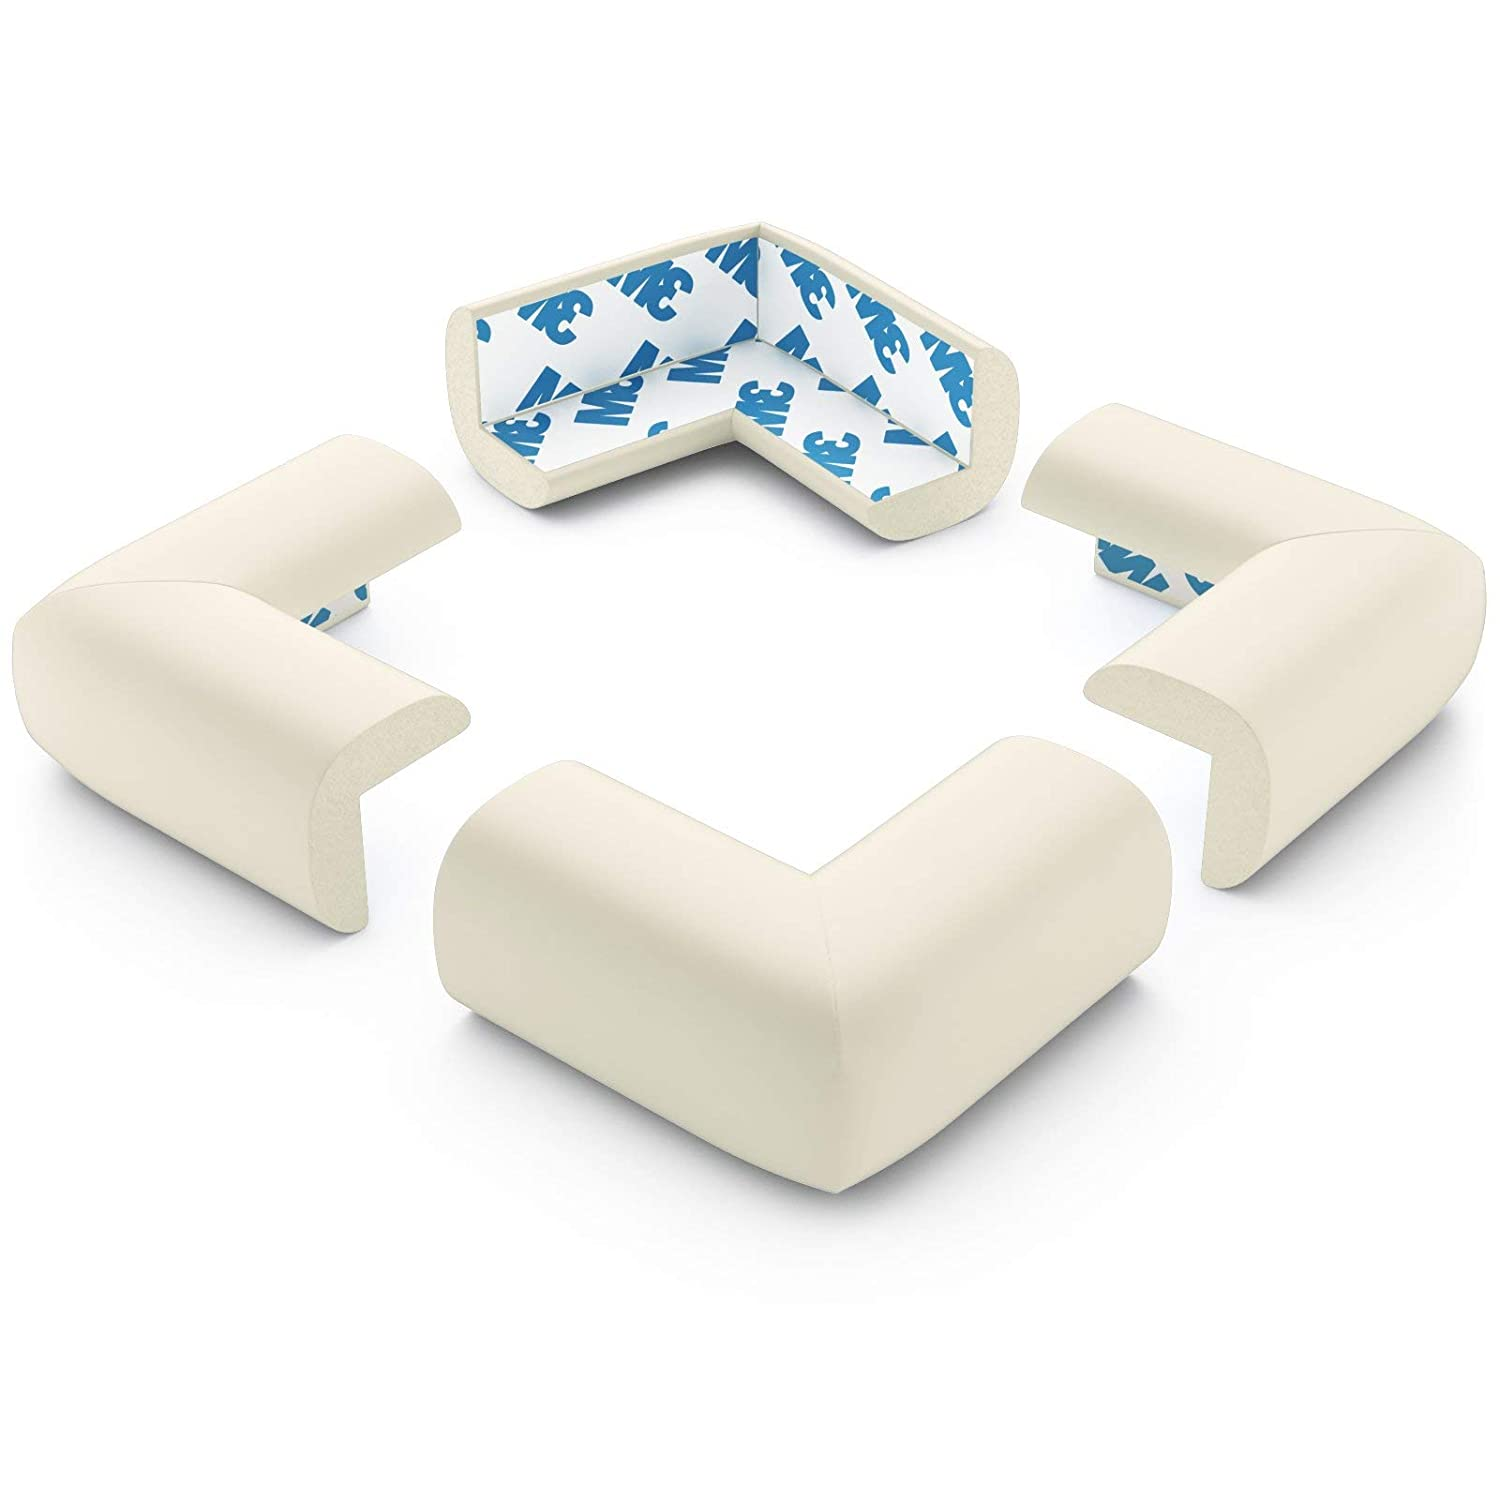 New 16 PCS Silicone Corner Edge Protector Cushions Table Cover Child Baby Safety